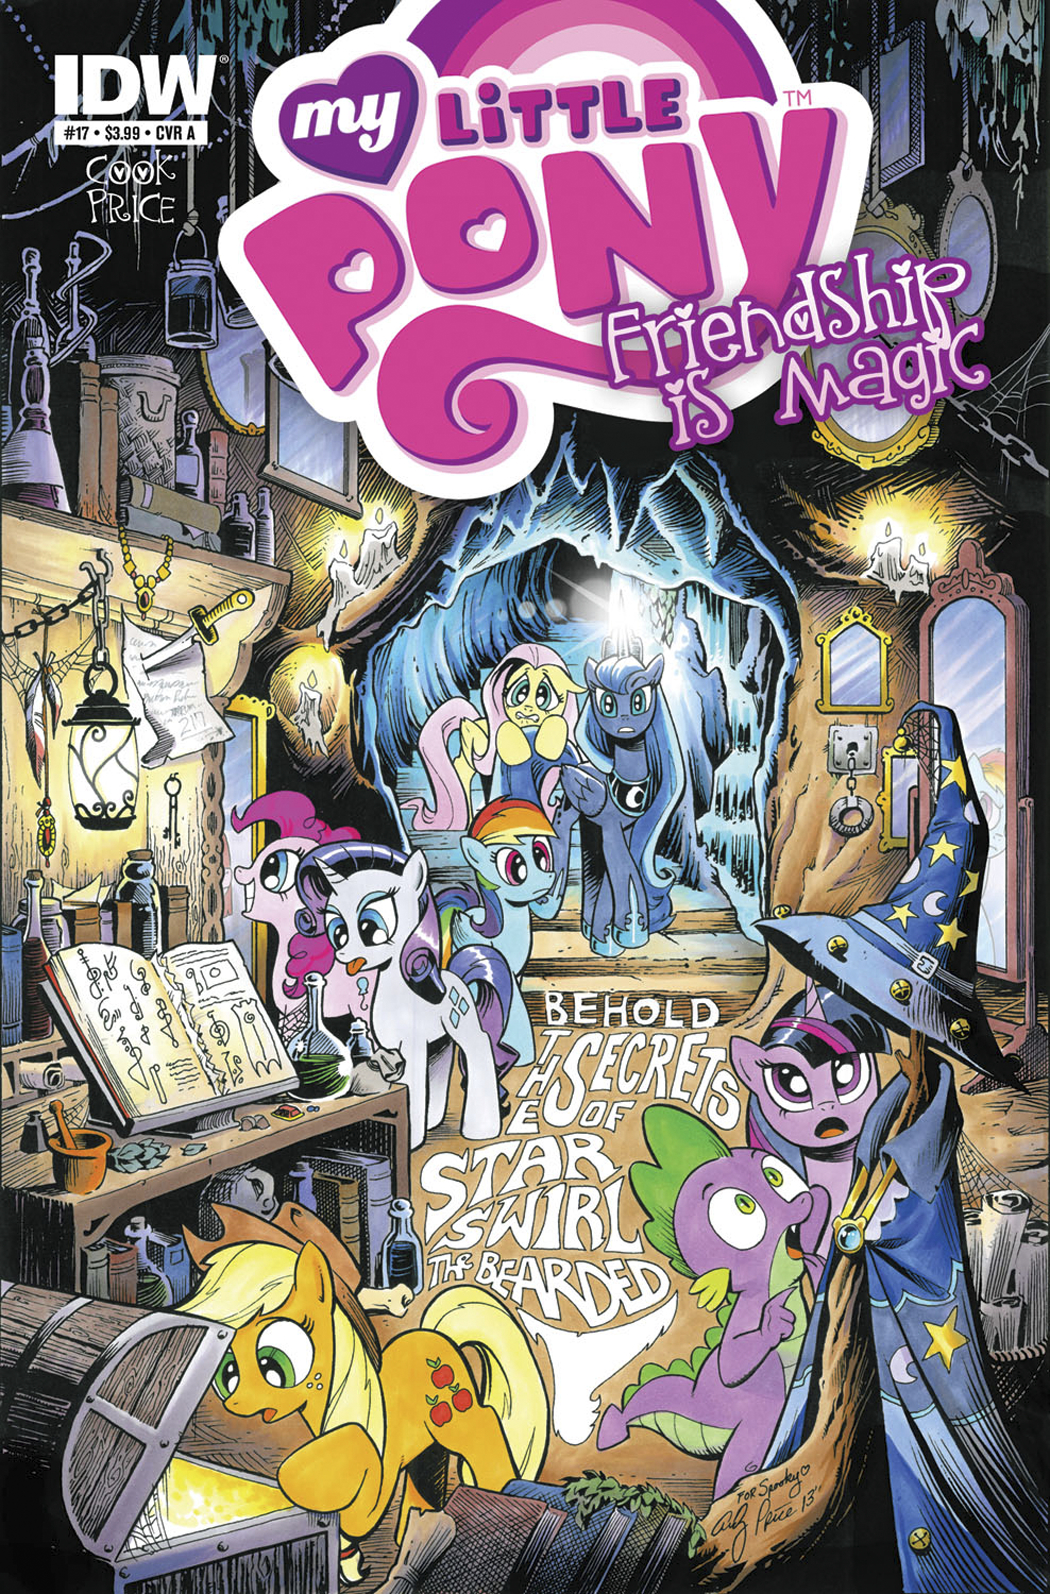 MY LITTLE PONY FRIENDSHIP IS MAGIC #17